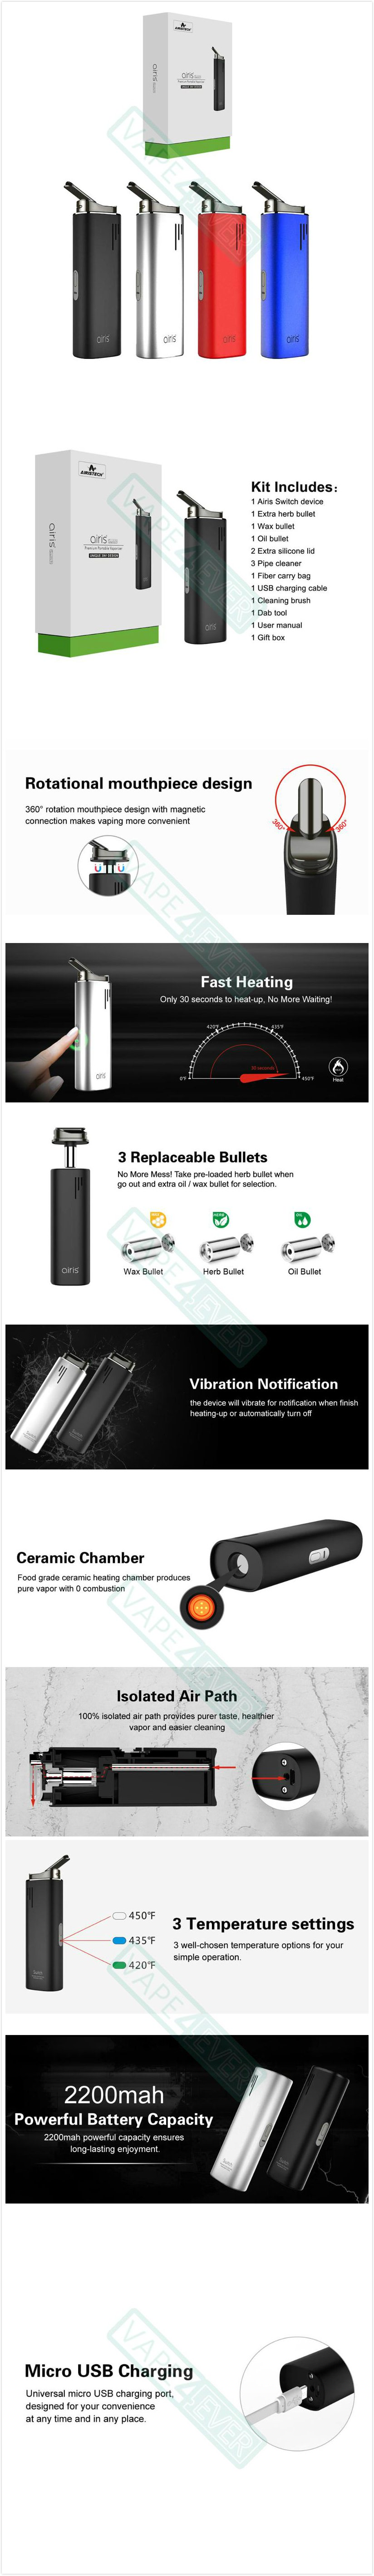 Airistech Switch 3-in-1 Starter Kit 2200mAh Wax/CBD Oil/Dry Herb Vaporizer Kit Instruction